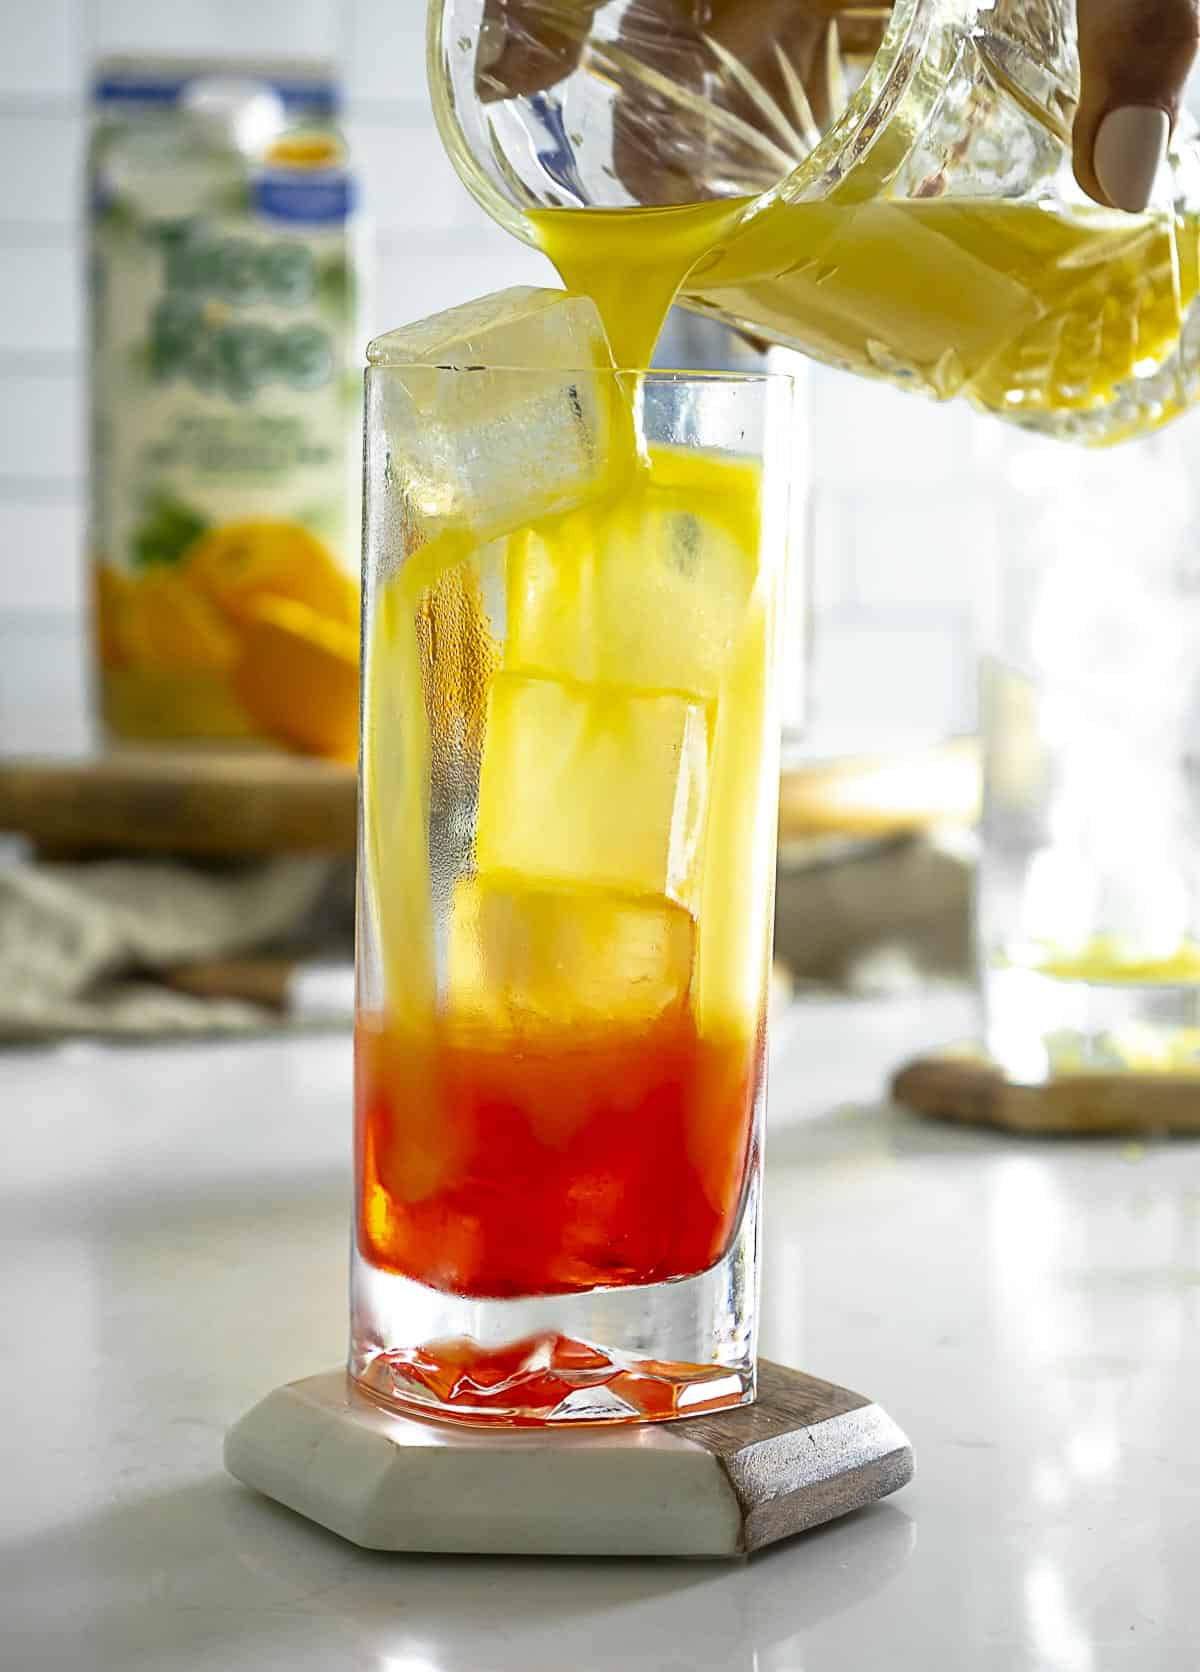 Pouring orange juice to top of drink.